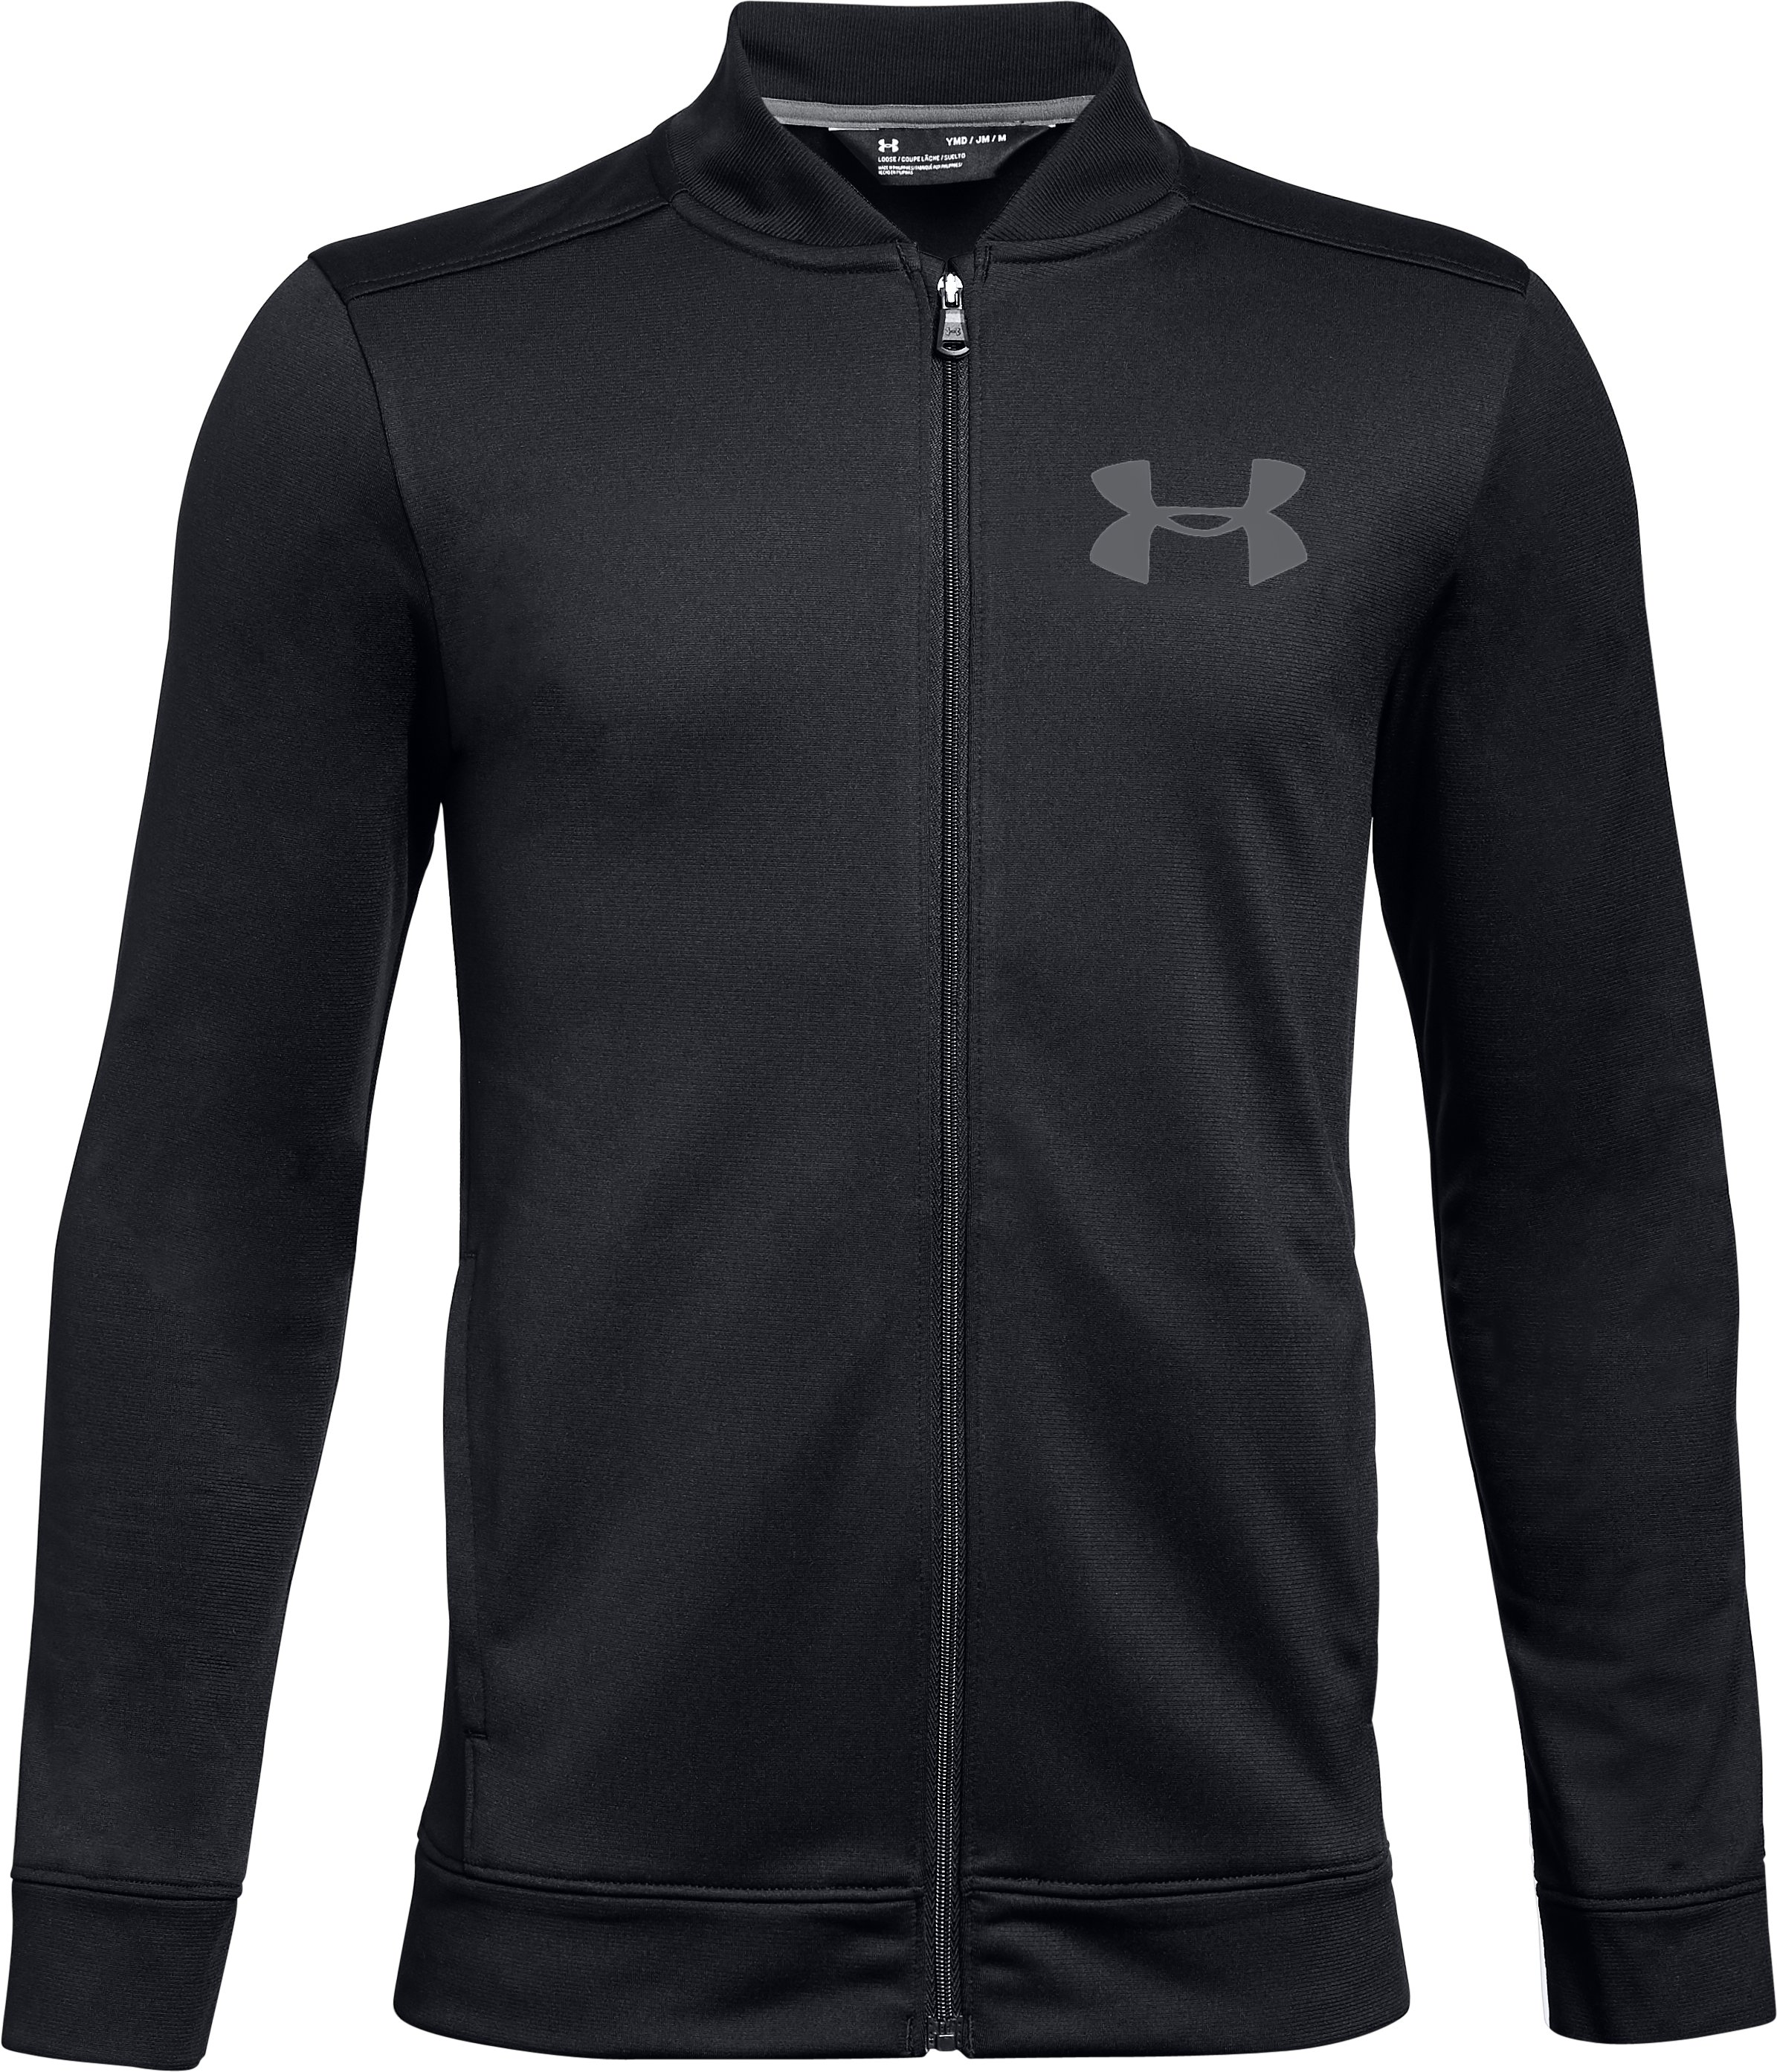 Boys' UA Pennant 2.0 Jacket, Black